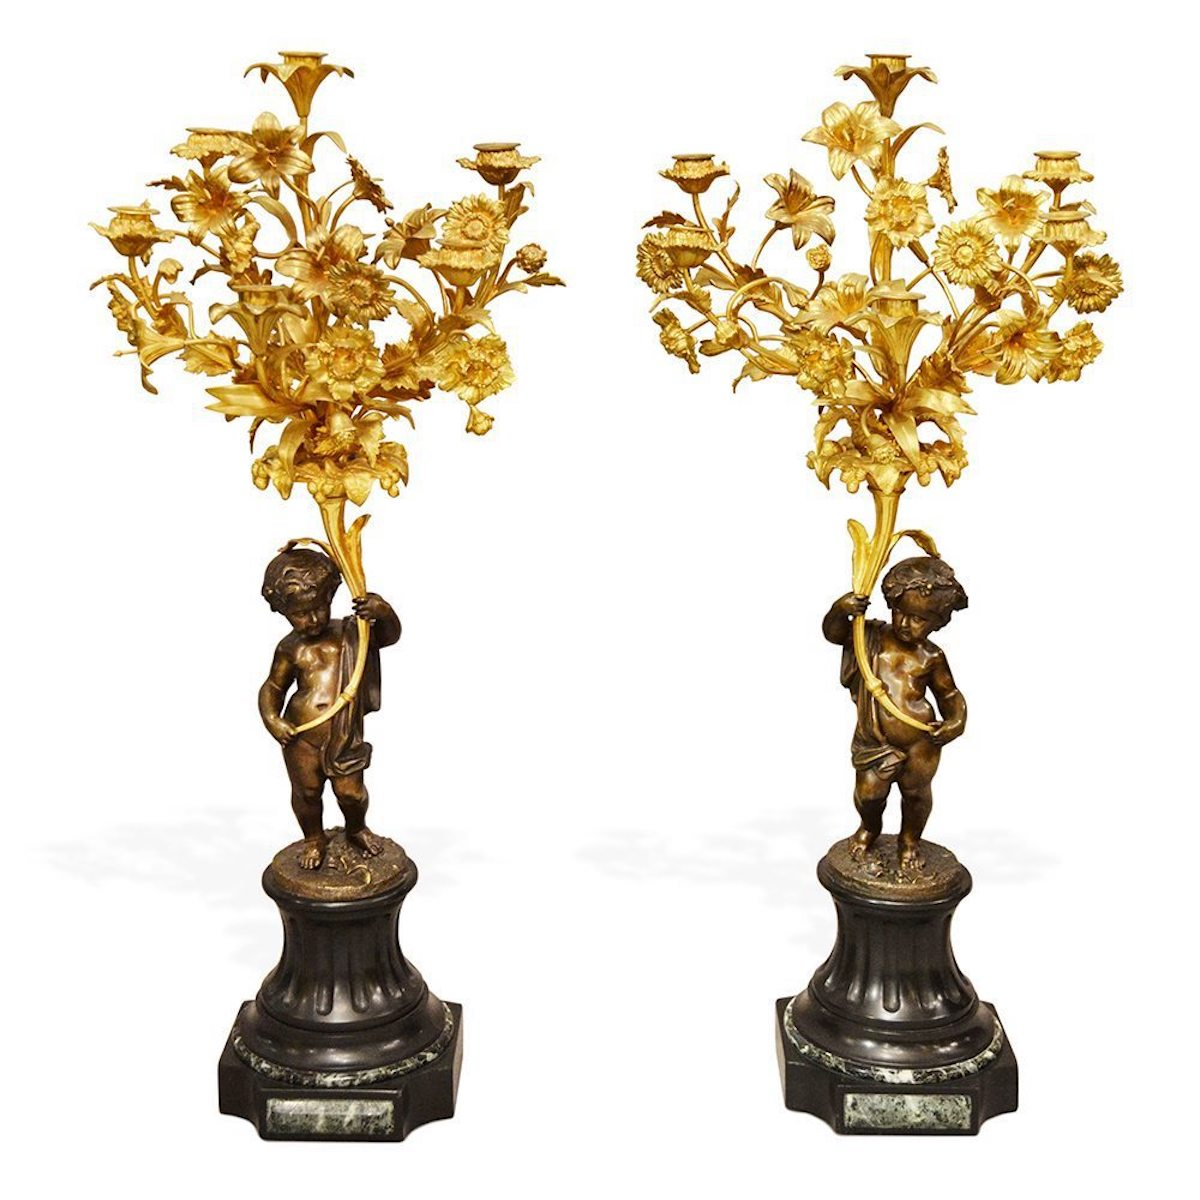 Pair of Early 20th Century Antique Bronze, Slate and Ormolu Cherub Candelabra